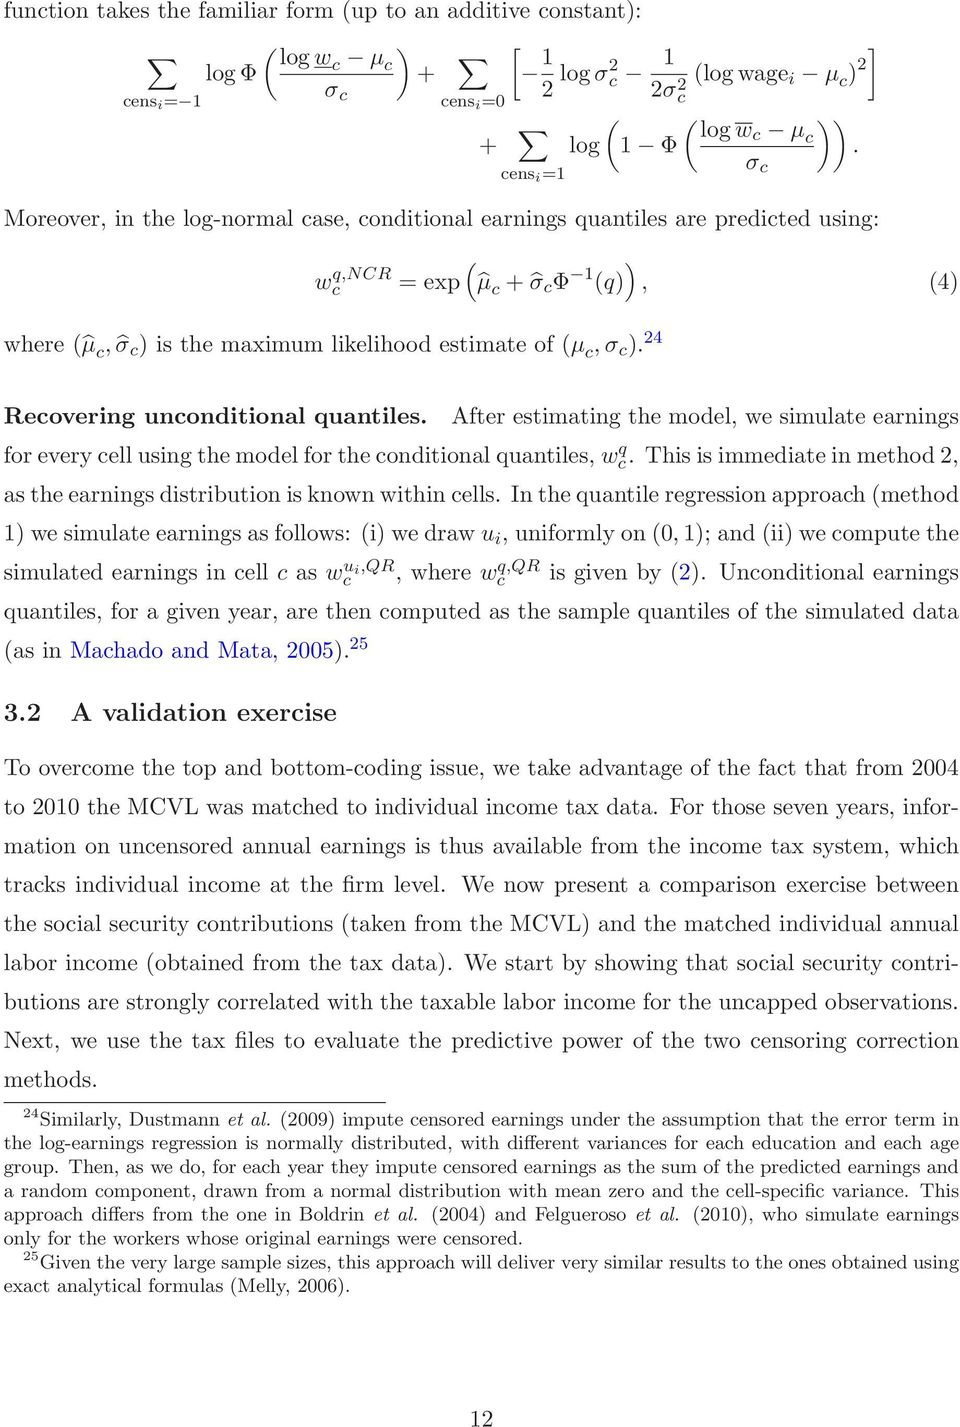 24 ( ) = exp µ c + σ c Φ 1 (q), (4) Recovering unconditional quantiles. After estimating the model, we simulate earnings foreverycellusingthemodelfortheconditionalquantiles, w q c.